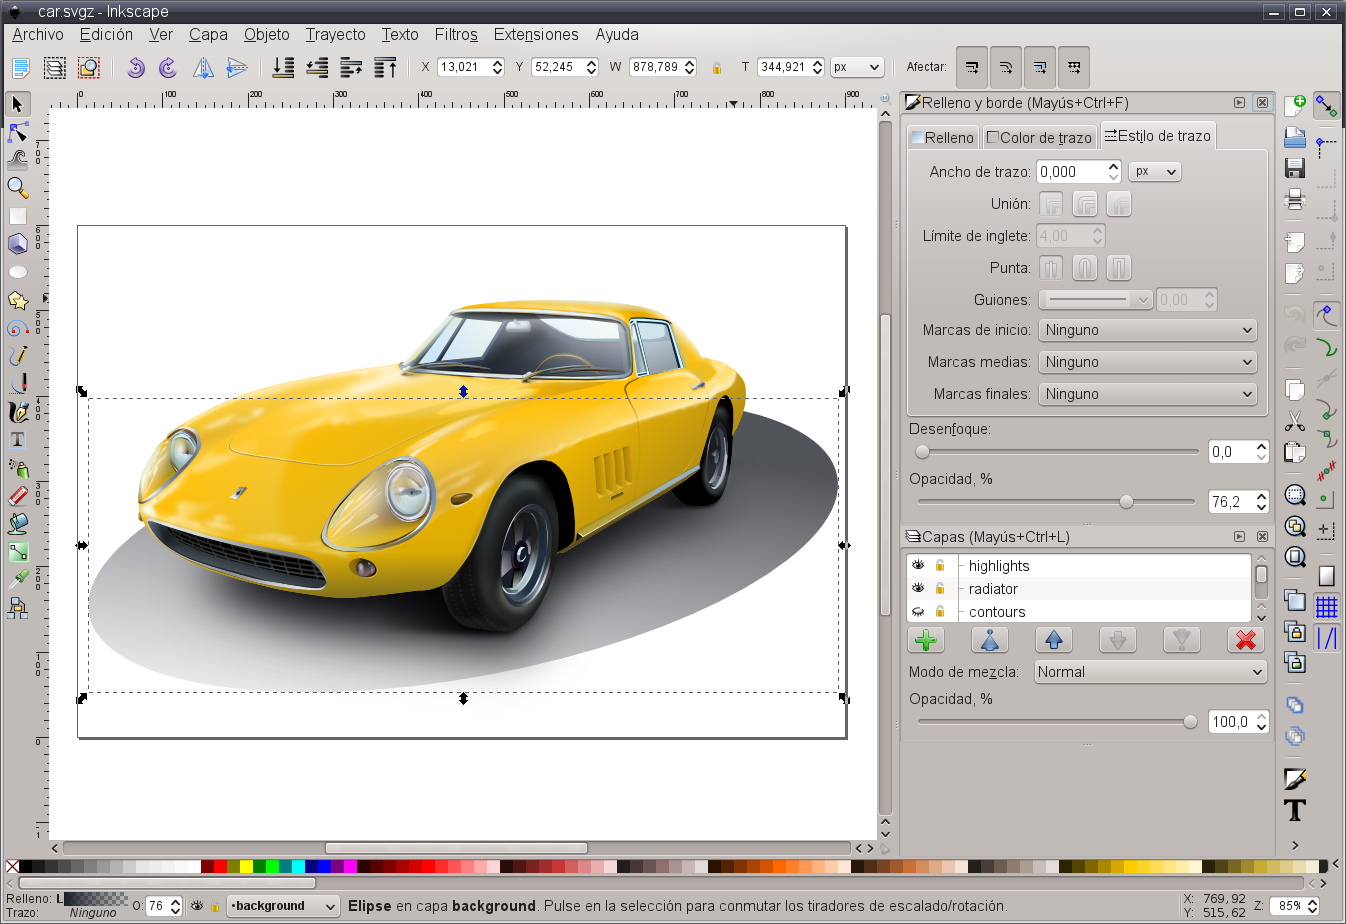 File Inkscape software